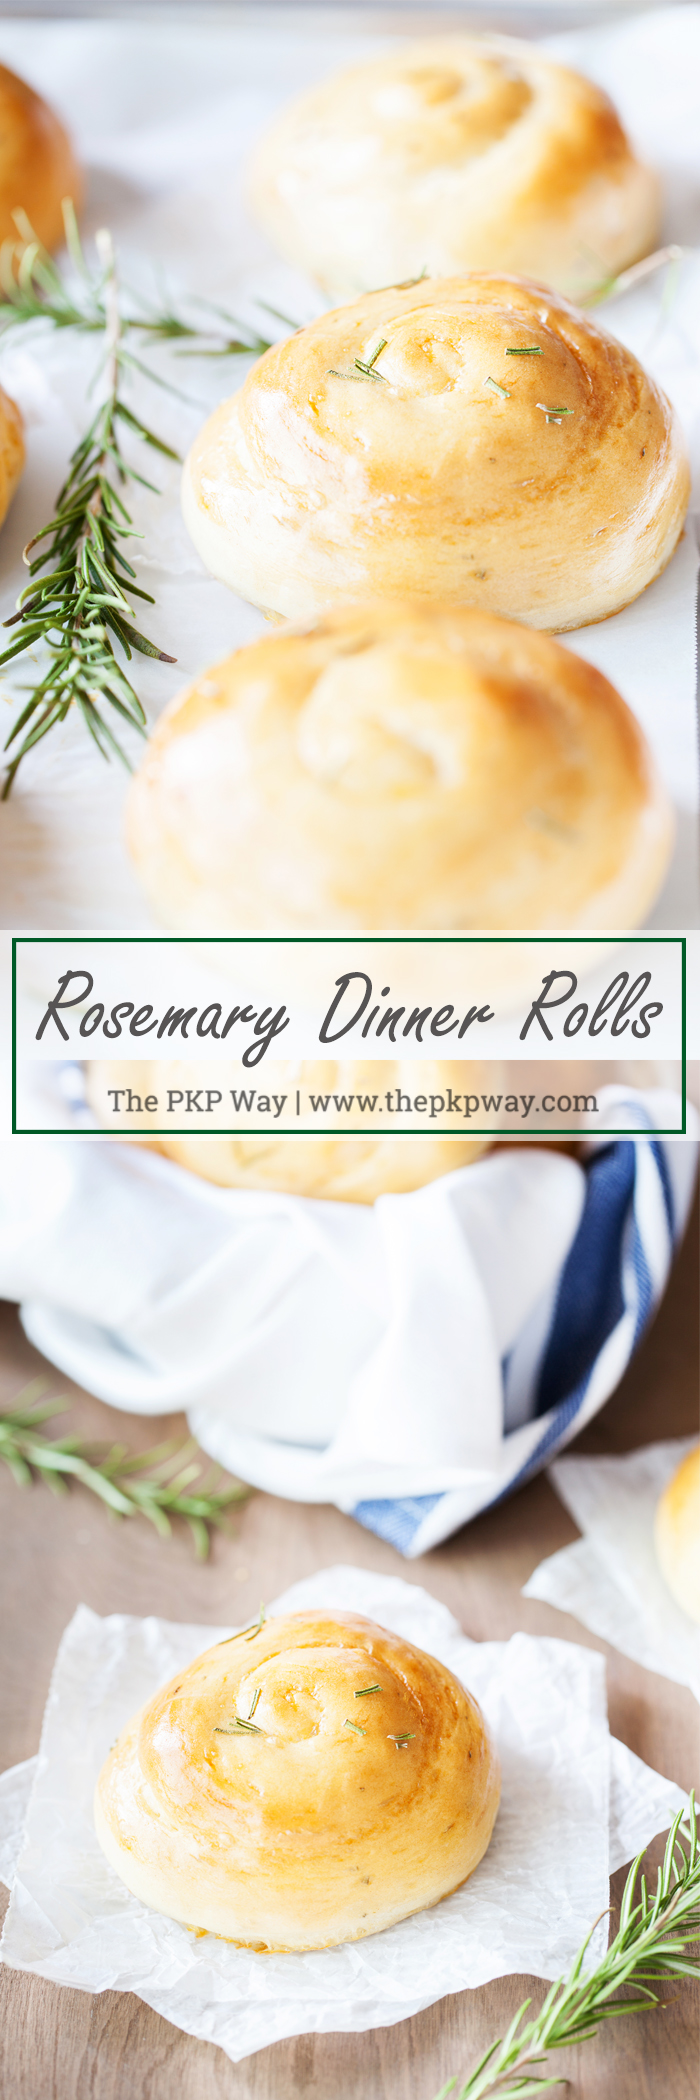 how to use fresh rosemary for memory